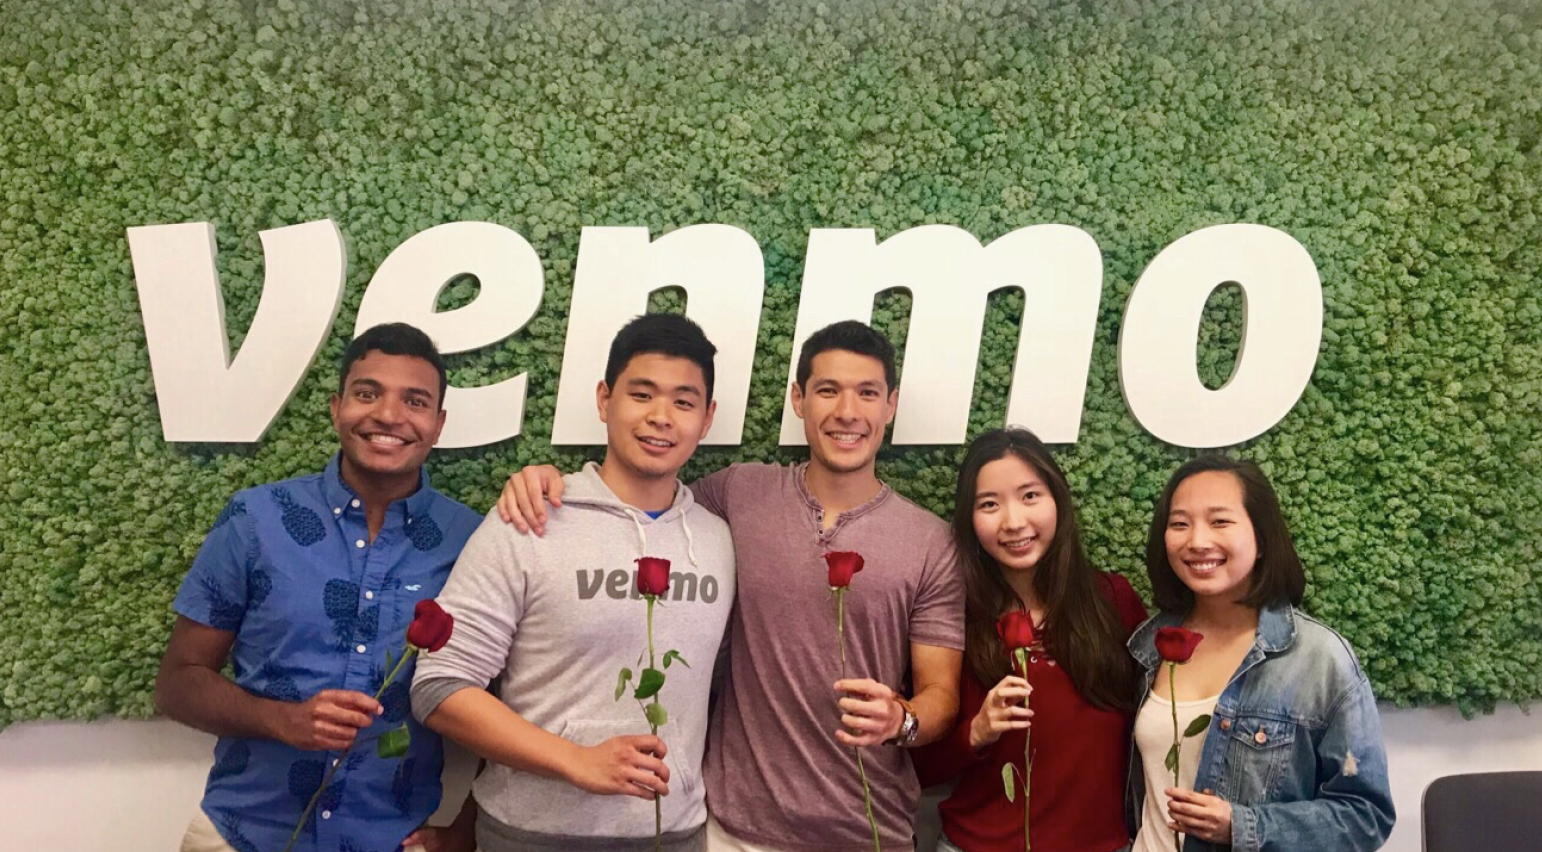 A Summer Intern's Look Inside Venmo: What Creates the Magic